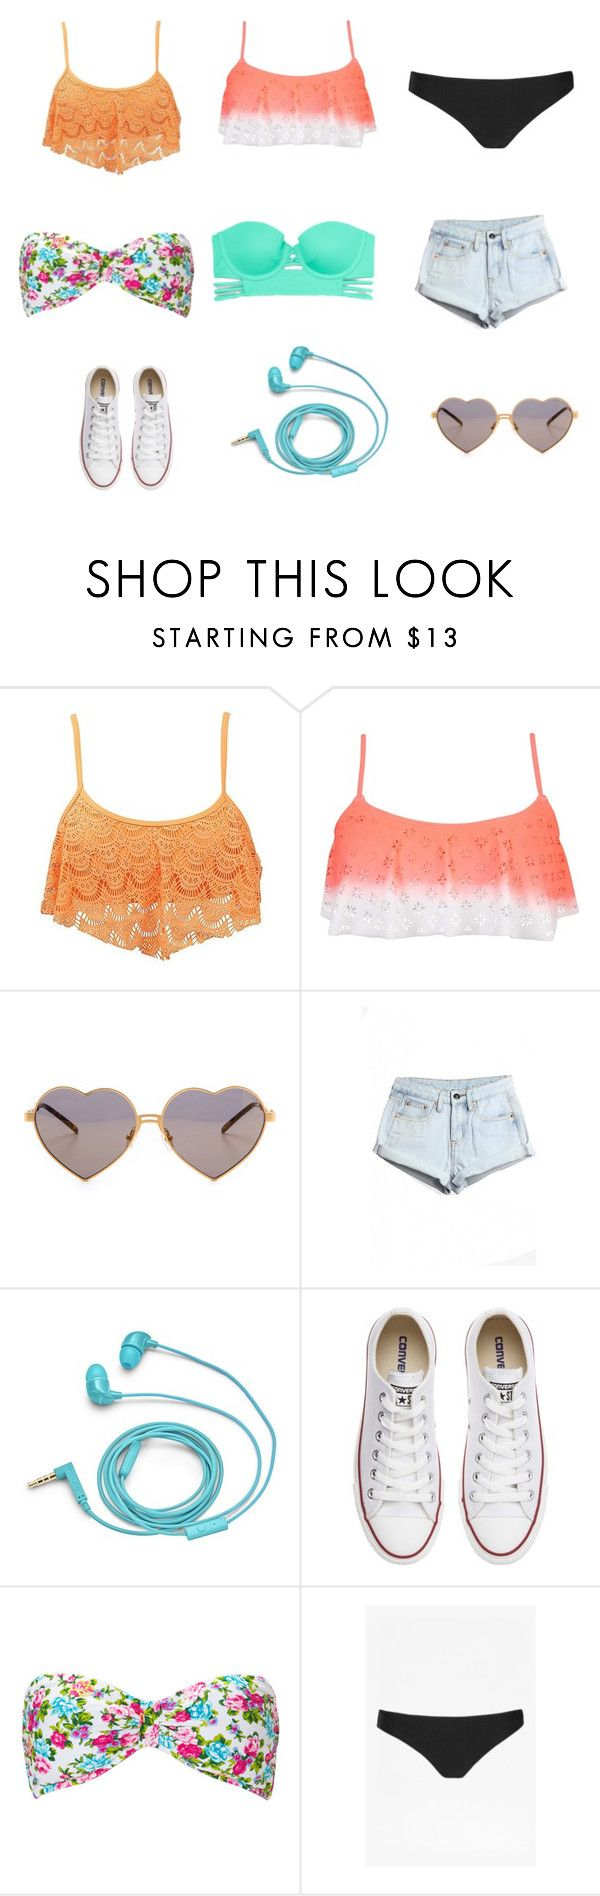 """""""Beach or pool day"""" by sarahlederman ❤ liked on Polyvore featuring Roxy, 99 Degrees, Wildfox, WithChic, FOSSIL, Converse, Forever 21, French Connection, Victoria's Secret and women's clothing"""